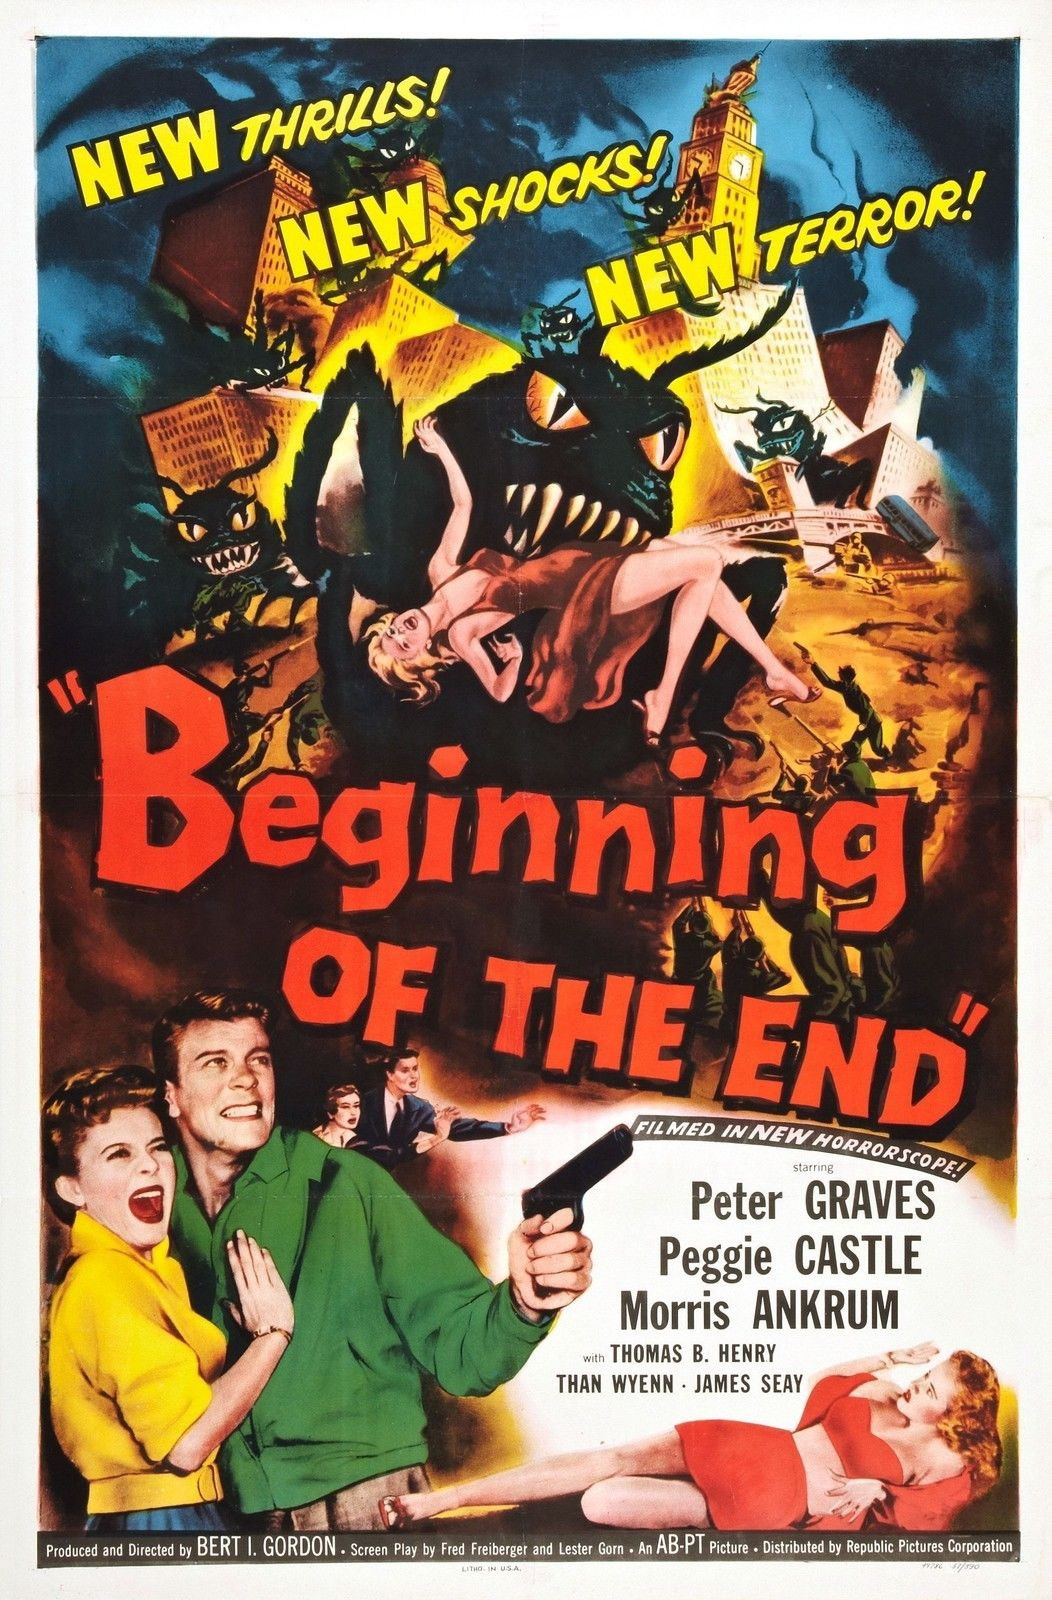 72784-BEGINNING-OF-THE-END-Movie-1957-Horror-Sci-Fi-FRAMED-CANVAS-PRINT-Toile